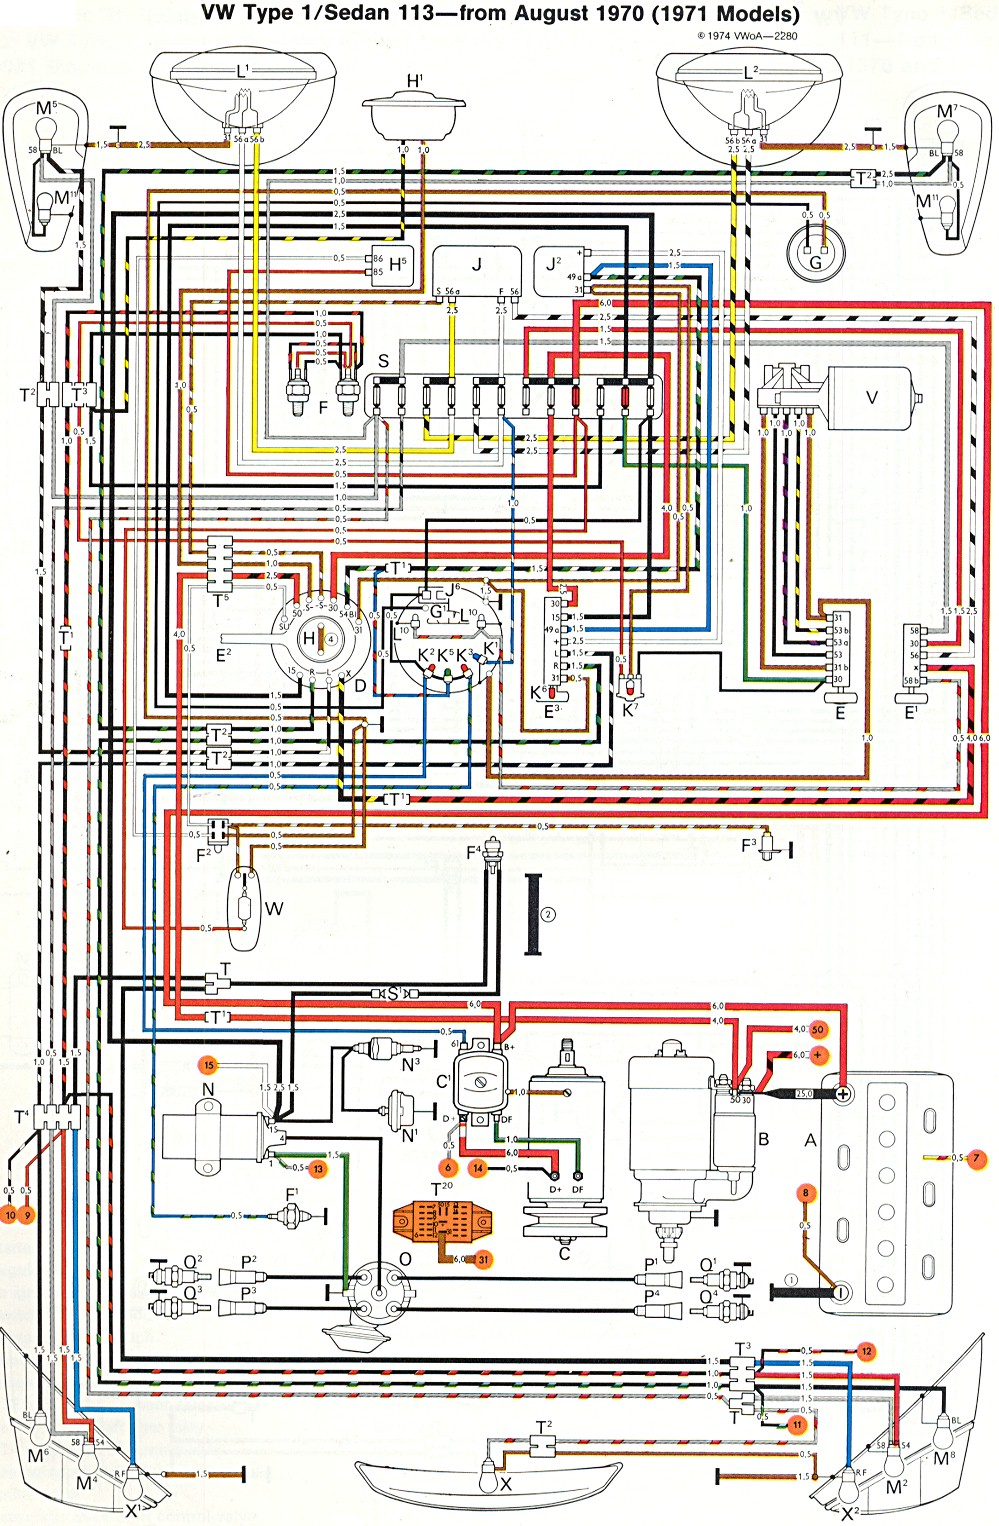 bug_super_71 1971 super beetle wiring diagram thegoldenbug com 1970 vw bug wiring diagram at fashall.co